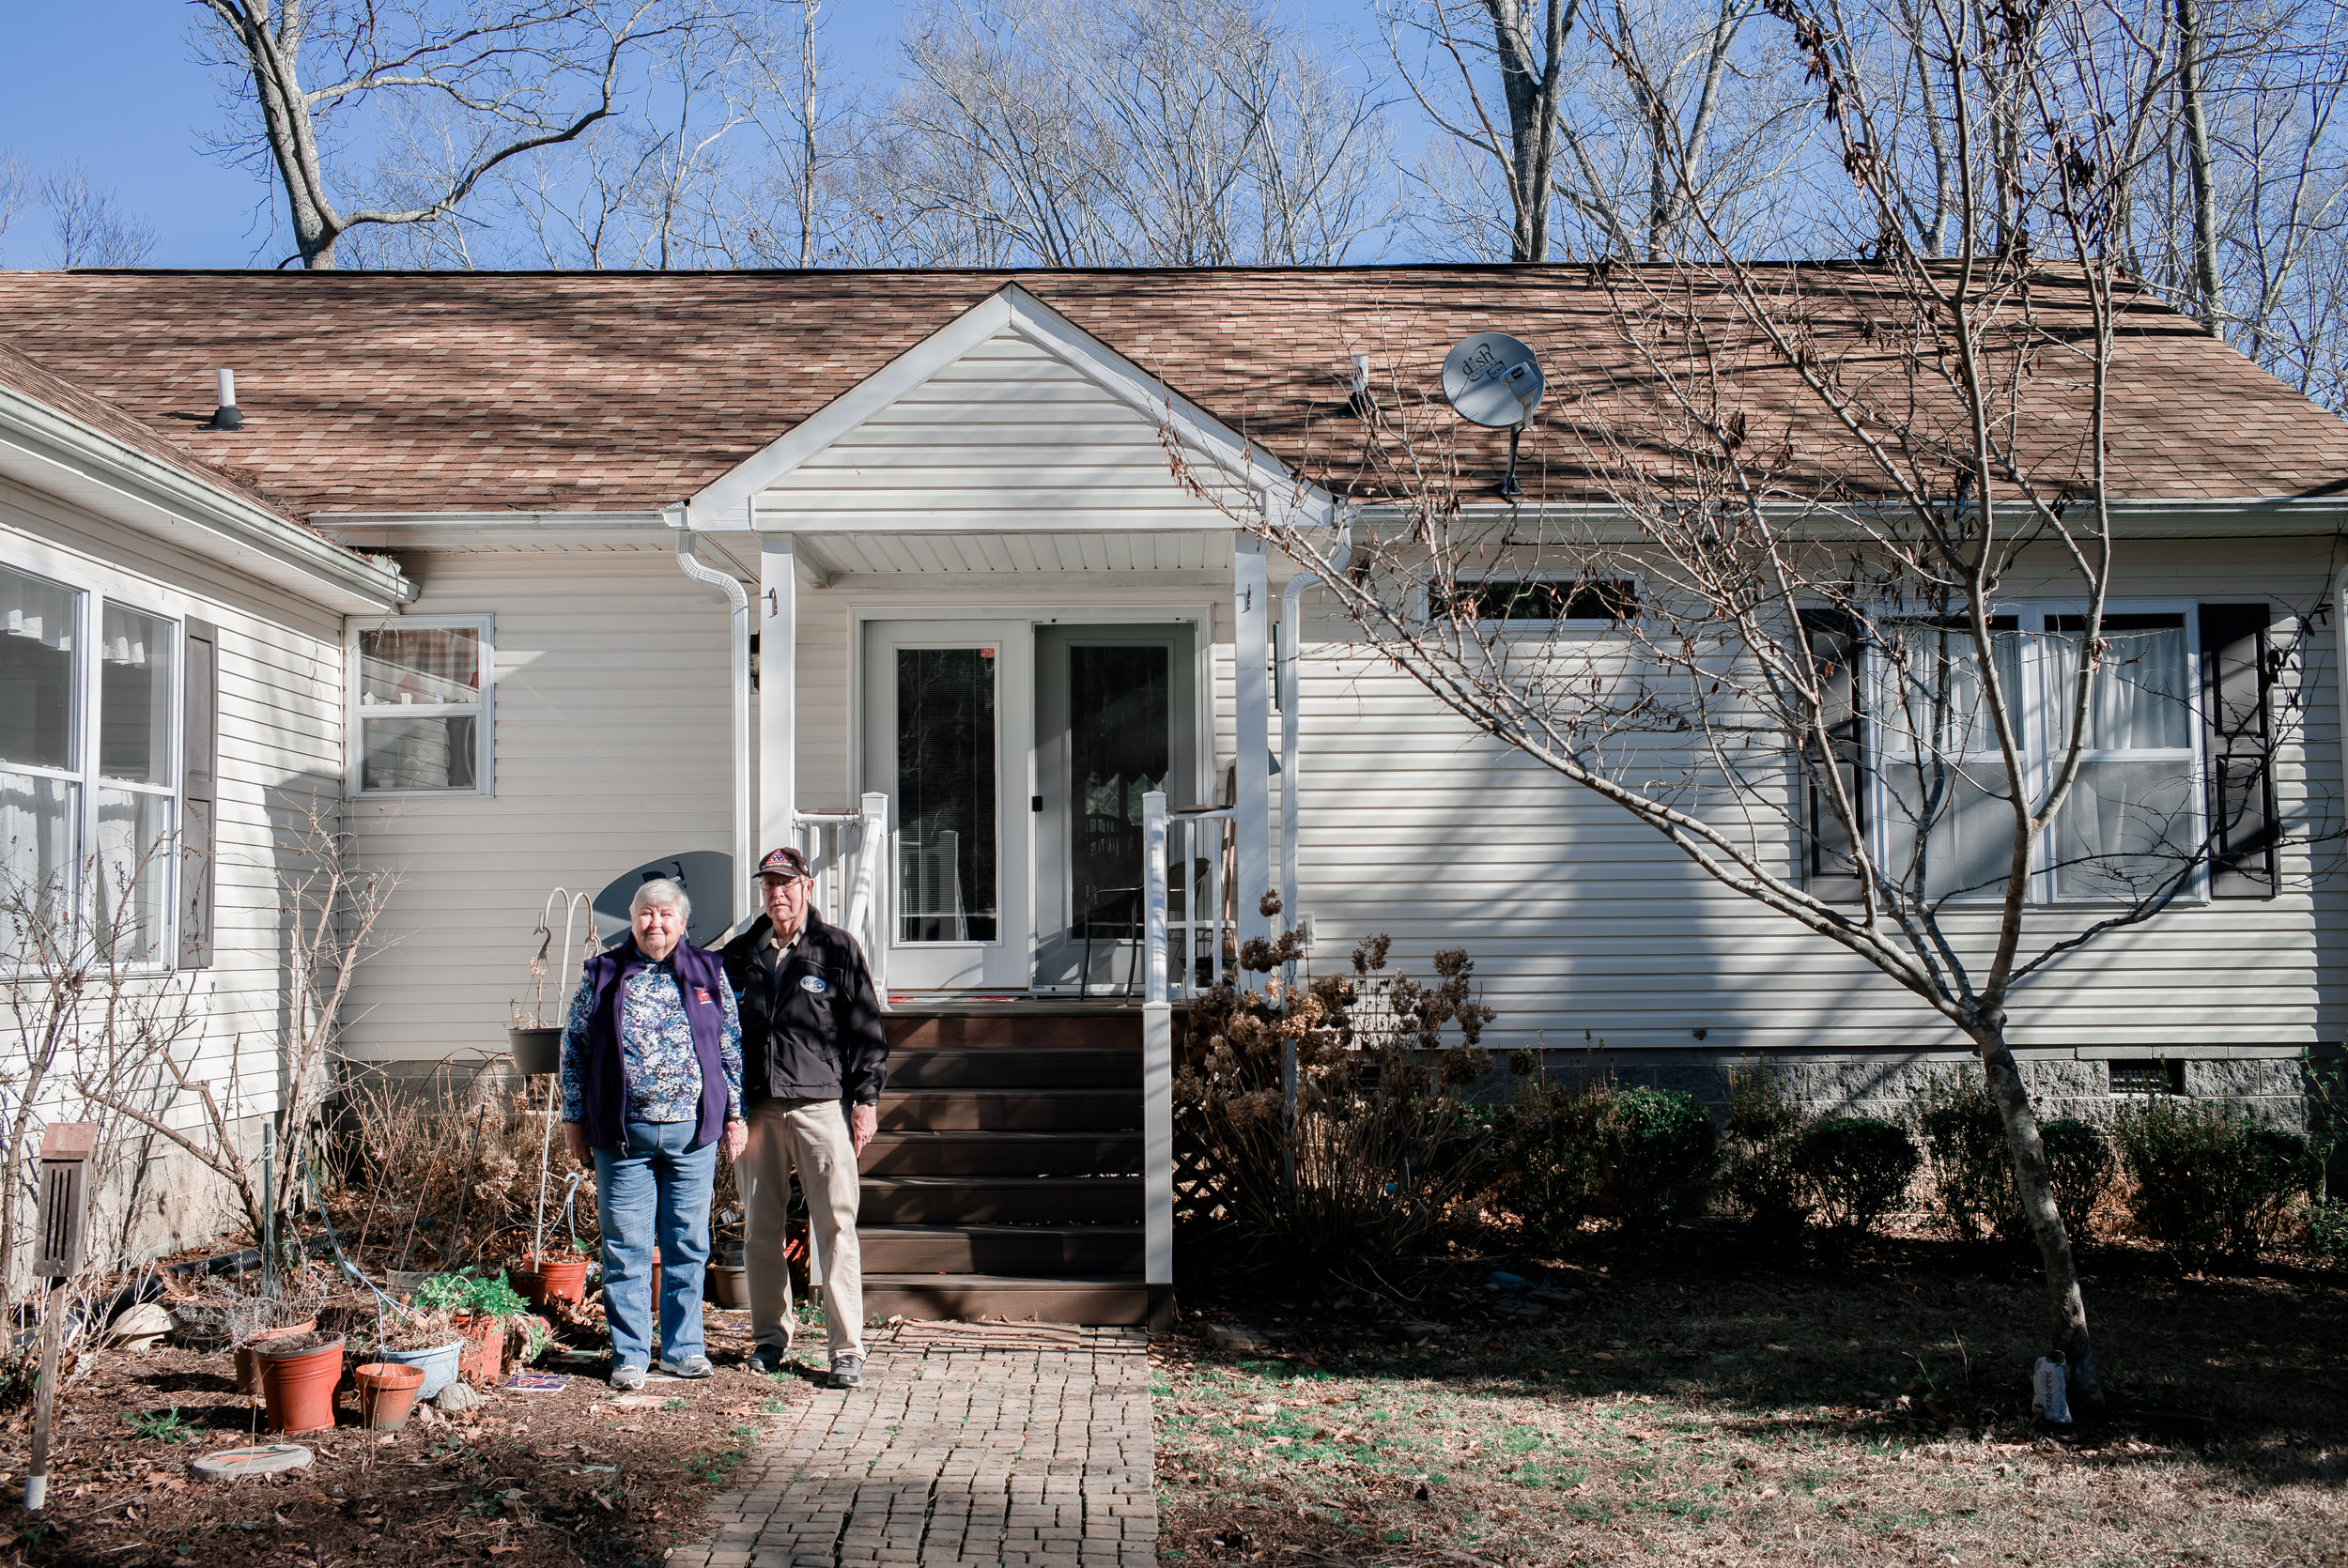 (L to R) Josephine A. Field 78, and Thomas C. Field, 78, pose for a portrait in front of their Lake Gaston house on Monday, February, 6th, 2017 in Littleton, North Carolina. The couple's son asks them to move with him because of Tom's heath situation, therefore, the couple has to sell their house where they have lived over 10 years.